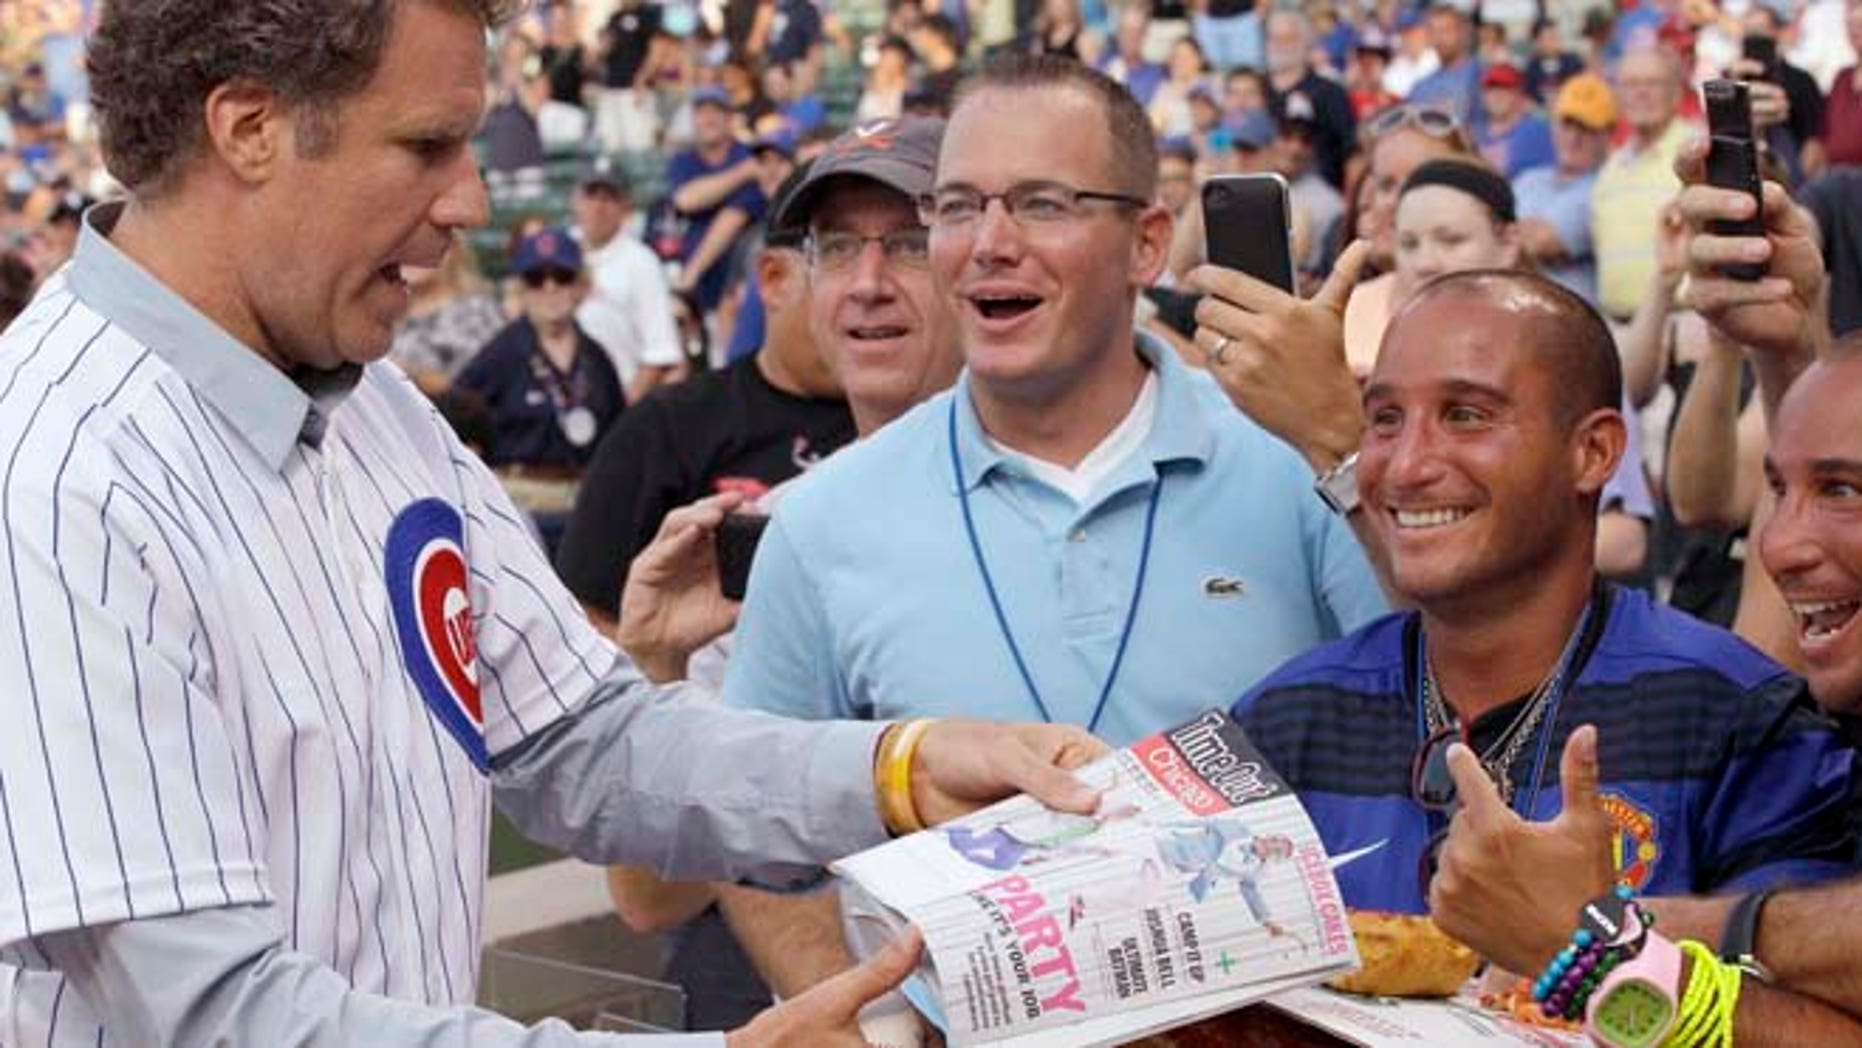 FILE - Will Ferrell, left, talks with fans after throwing out the ceremonial first pitch before a baseball game between the Miami Marlins and the Chicago Cubs in Chicago.